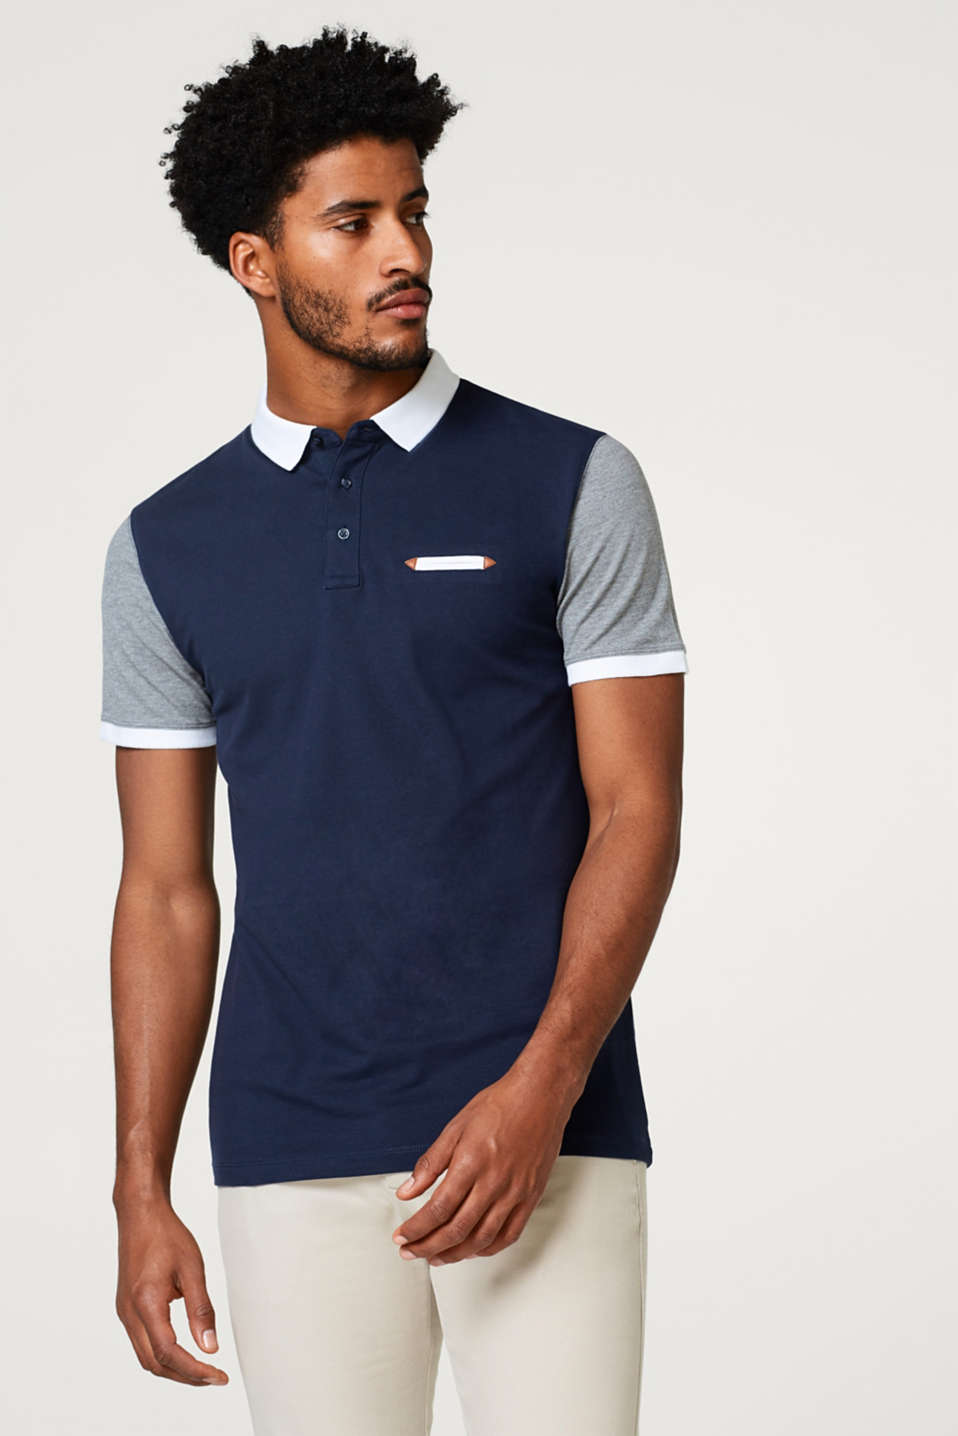 Esprit - Fitted polo shirt in a multi-coloured look